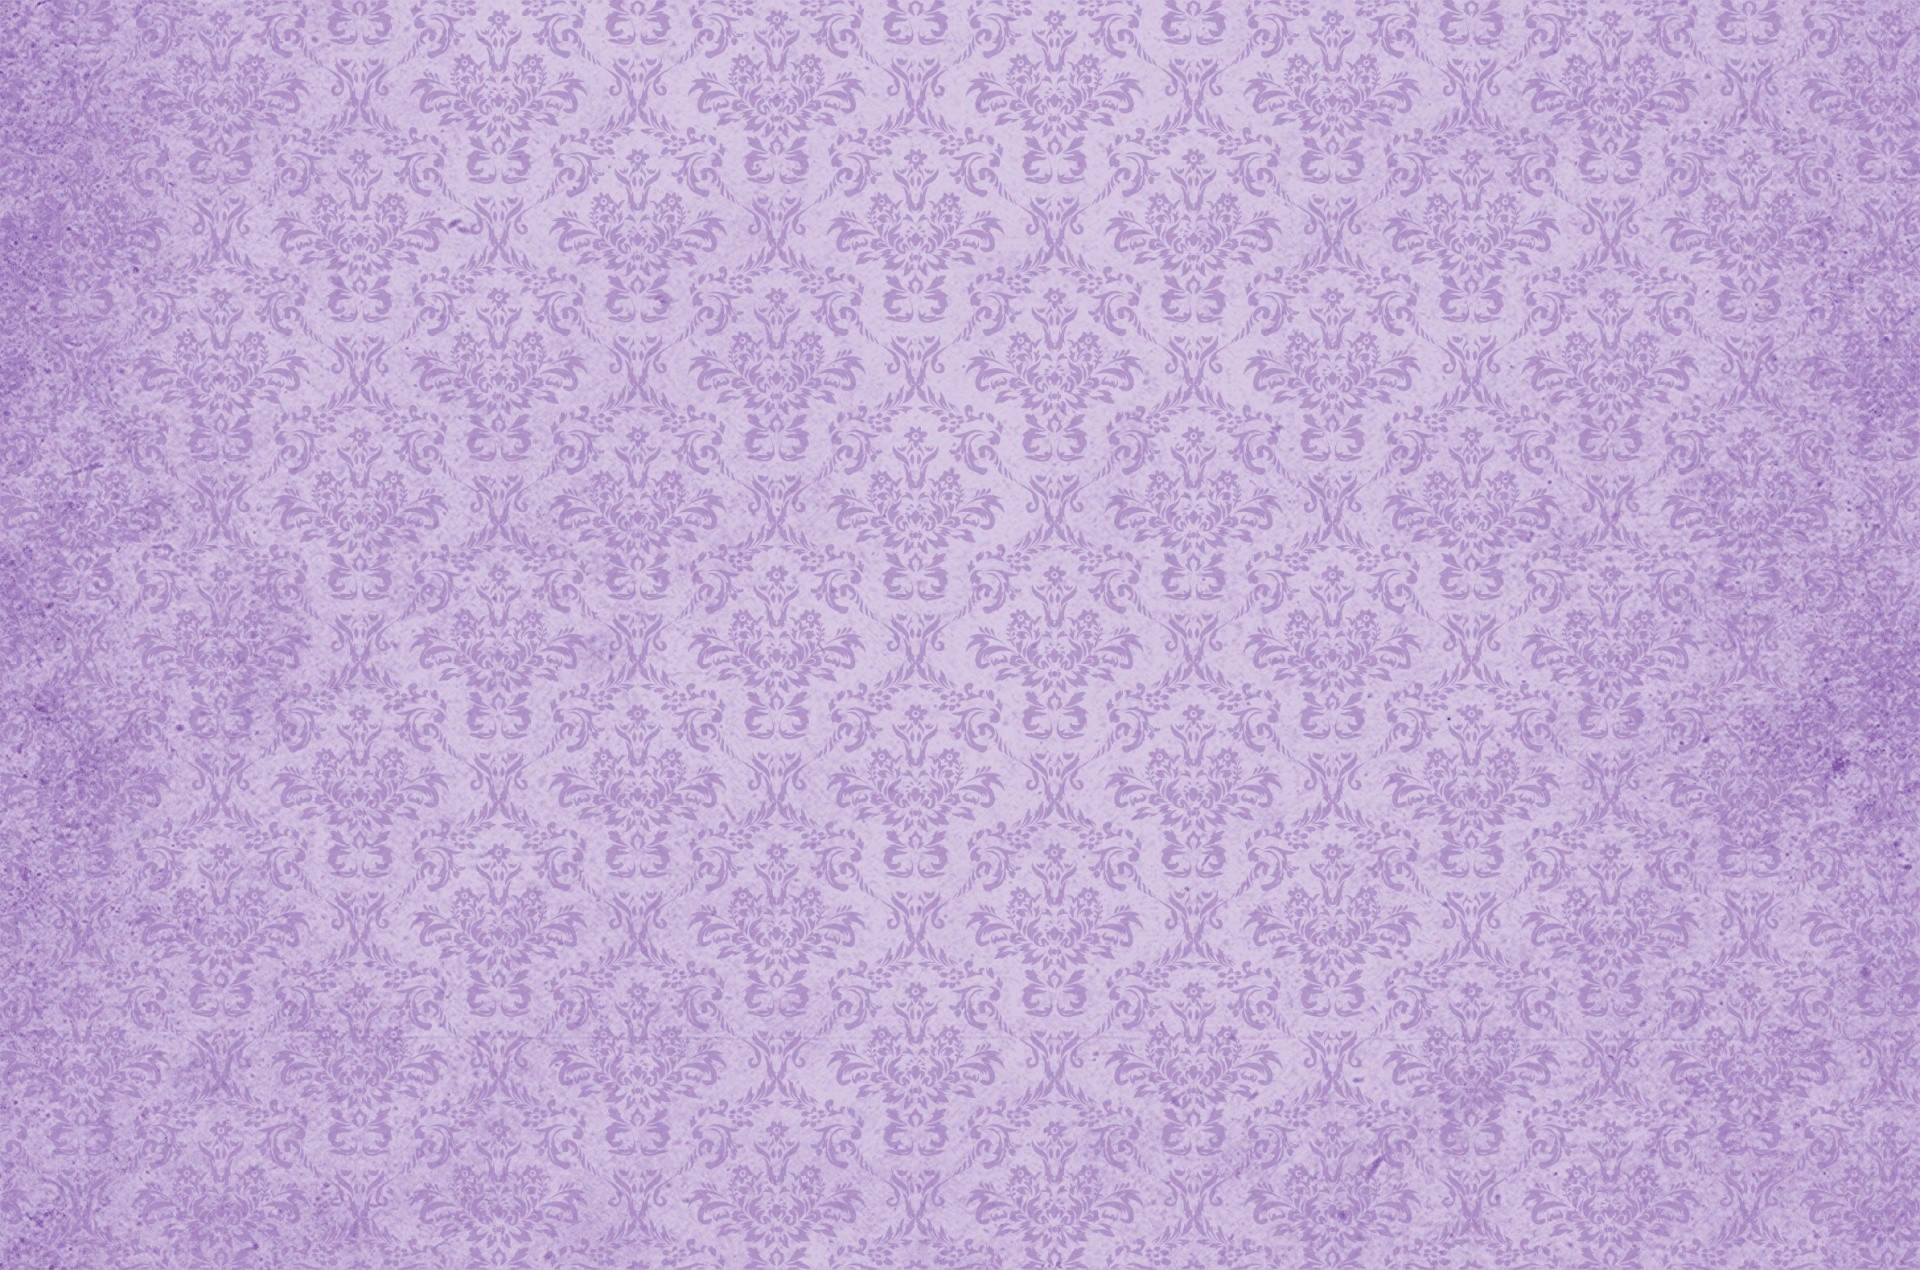 1920x1270 Damask Vintage Background Lavender